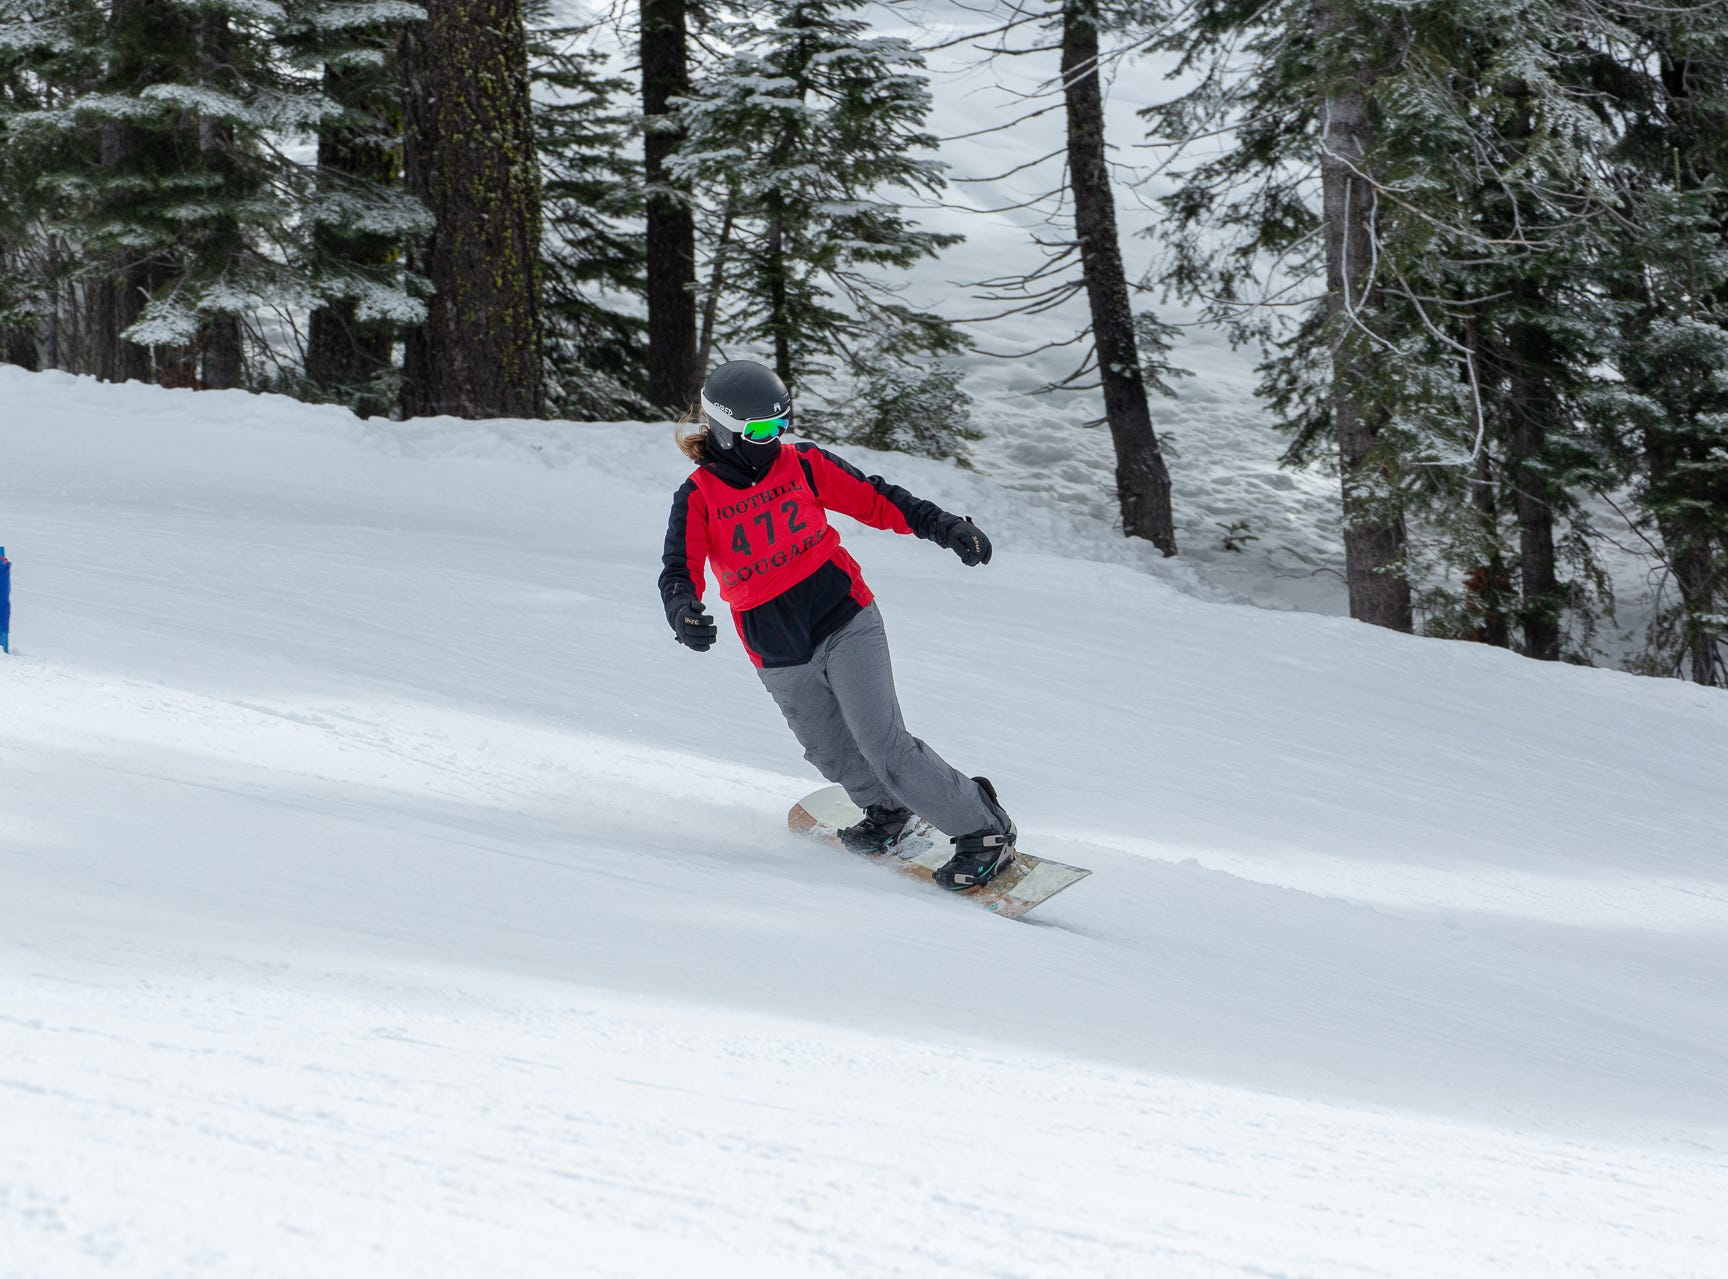 Mattie McKee of Foothill competes in the second high school snowboard meet of 2019 on Monday, Jan. 21 at Mt. Shasta Ski Park.